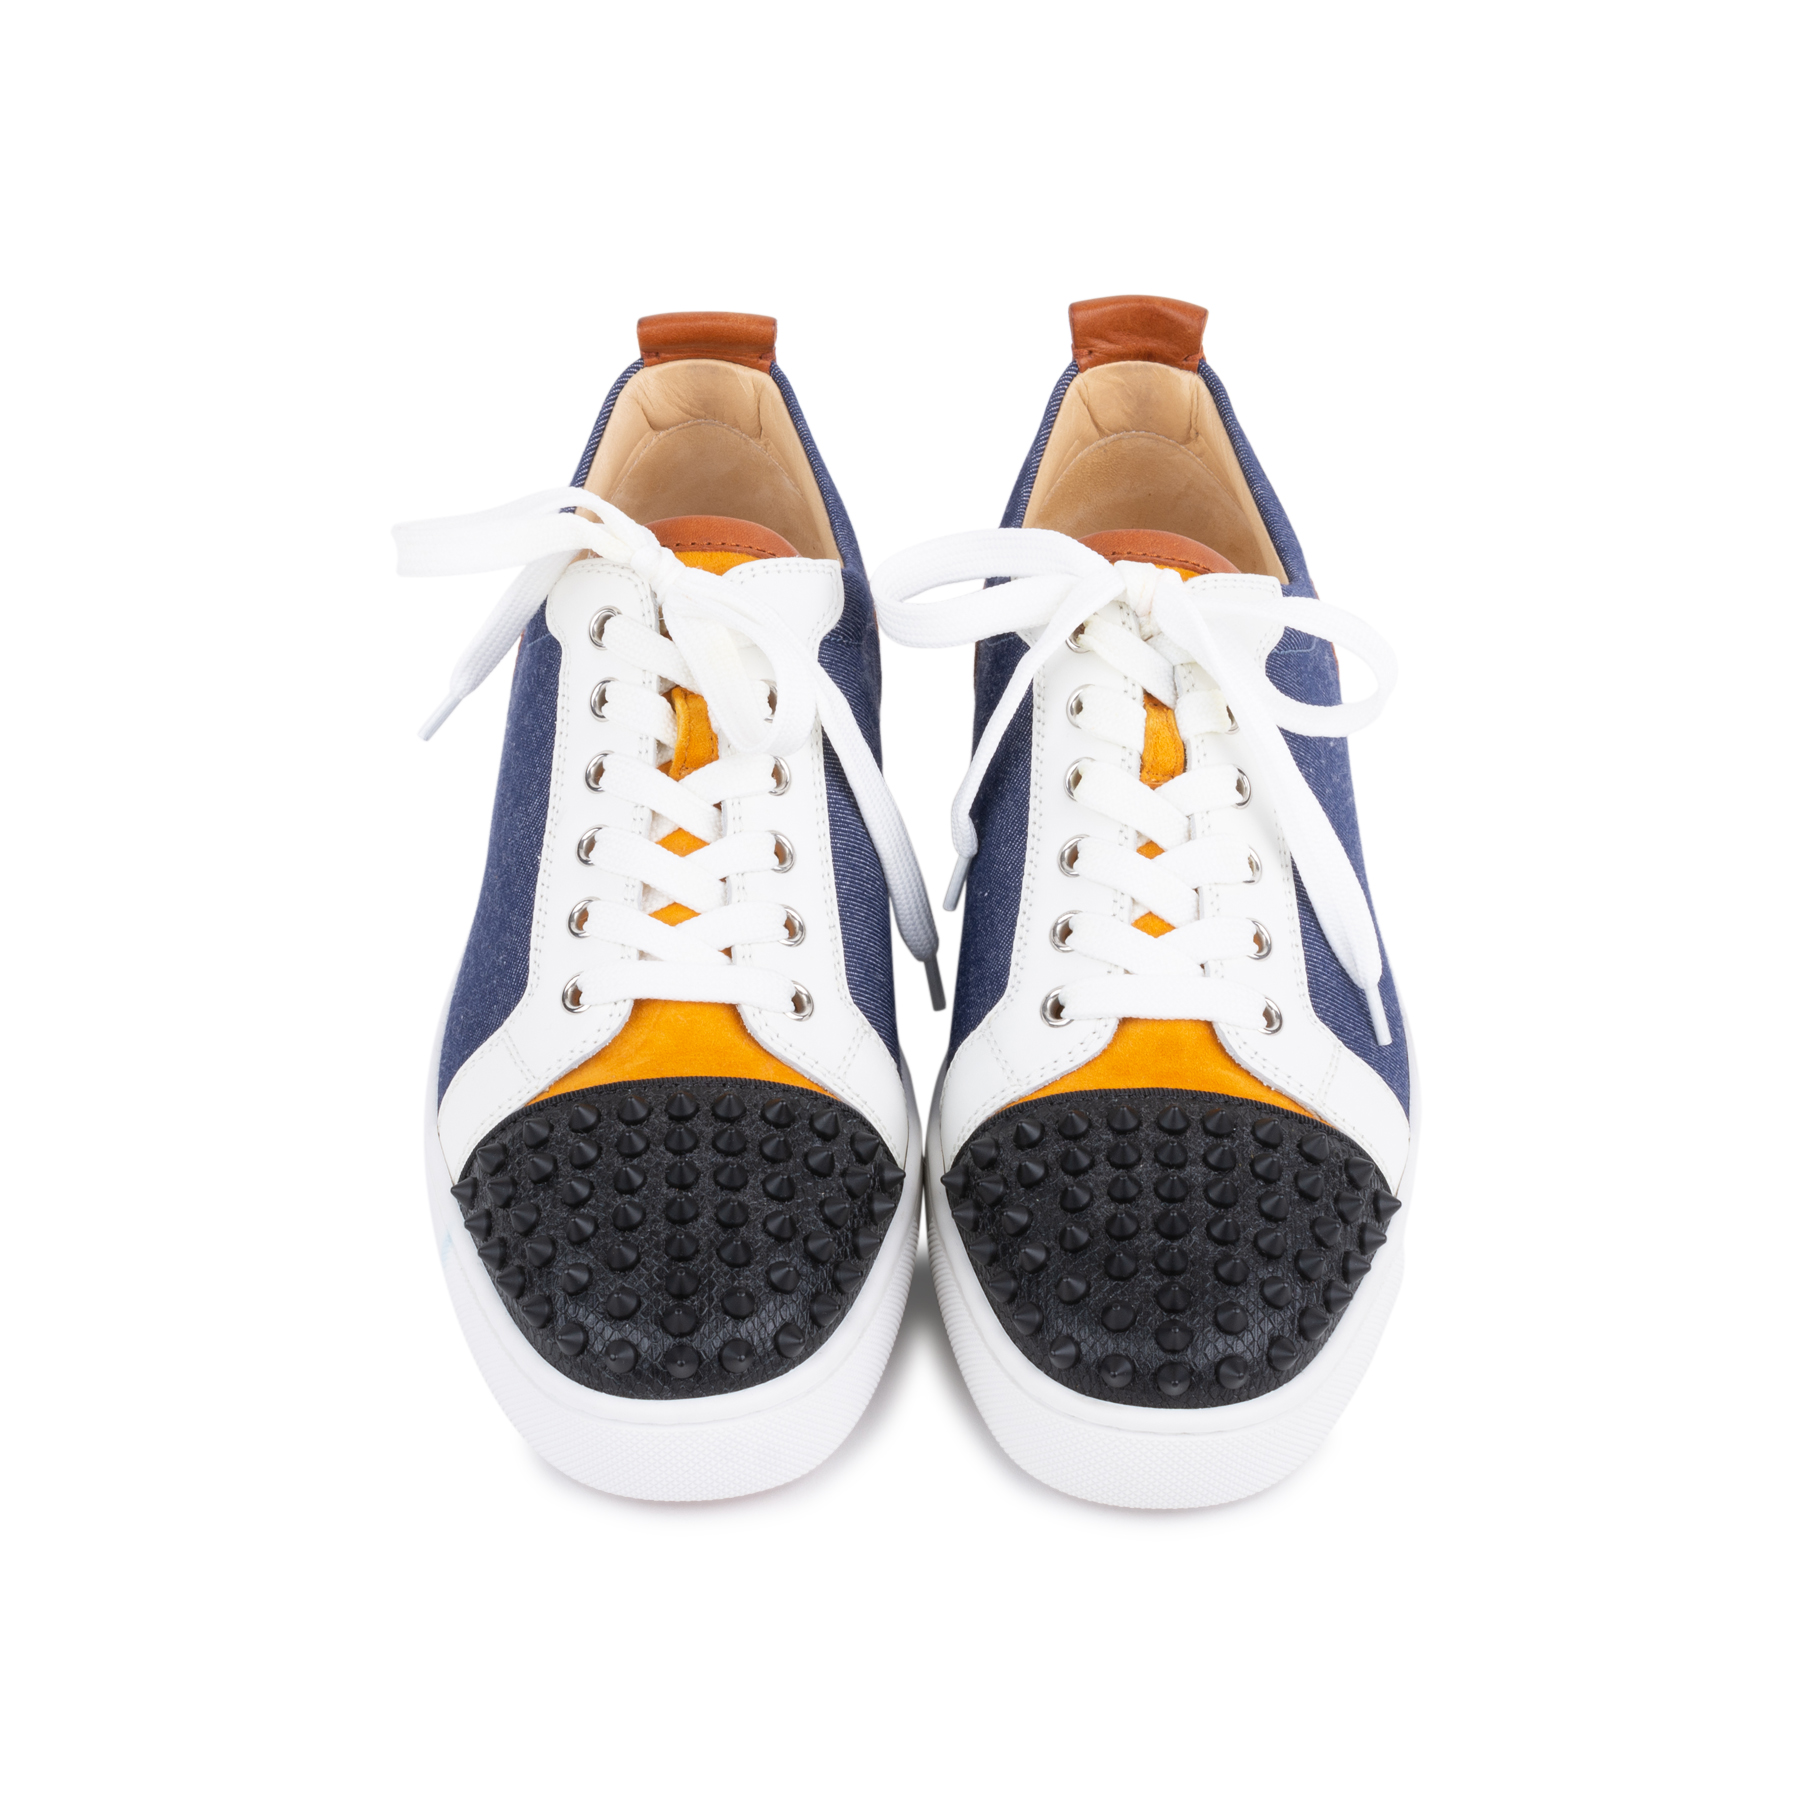 separation shoes c60c1 eb099 Louis Junior Spiked Leather and Denim Sneakers